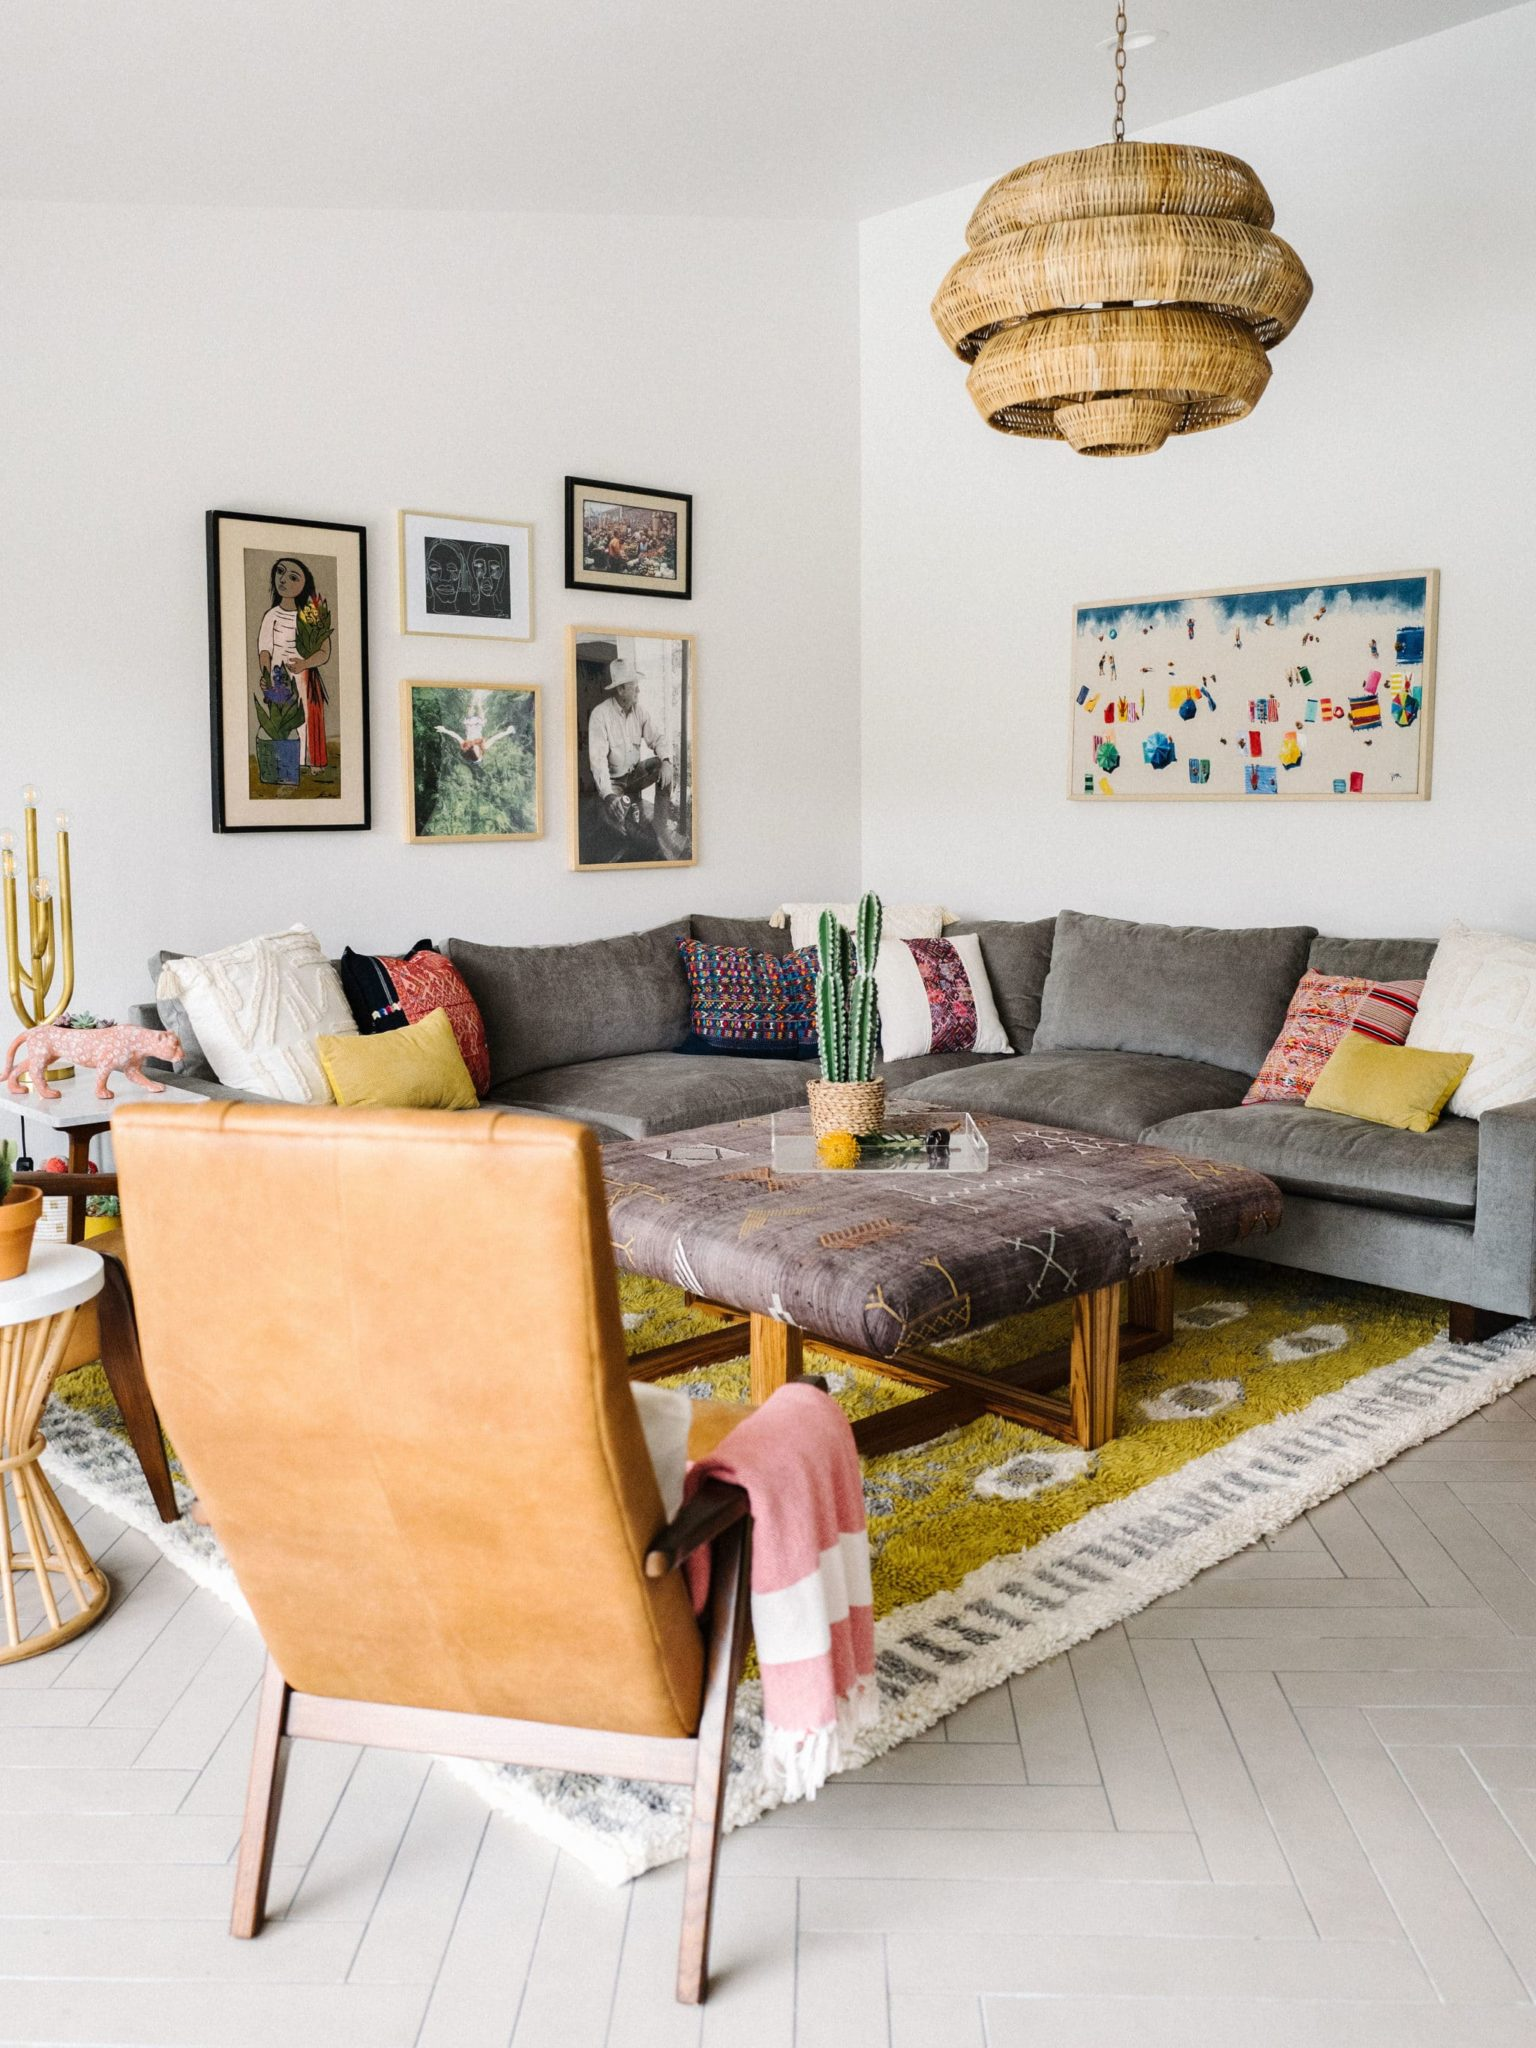 Home Interior Design Ideas How To Create A Cohesive Look The Effortless Chic